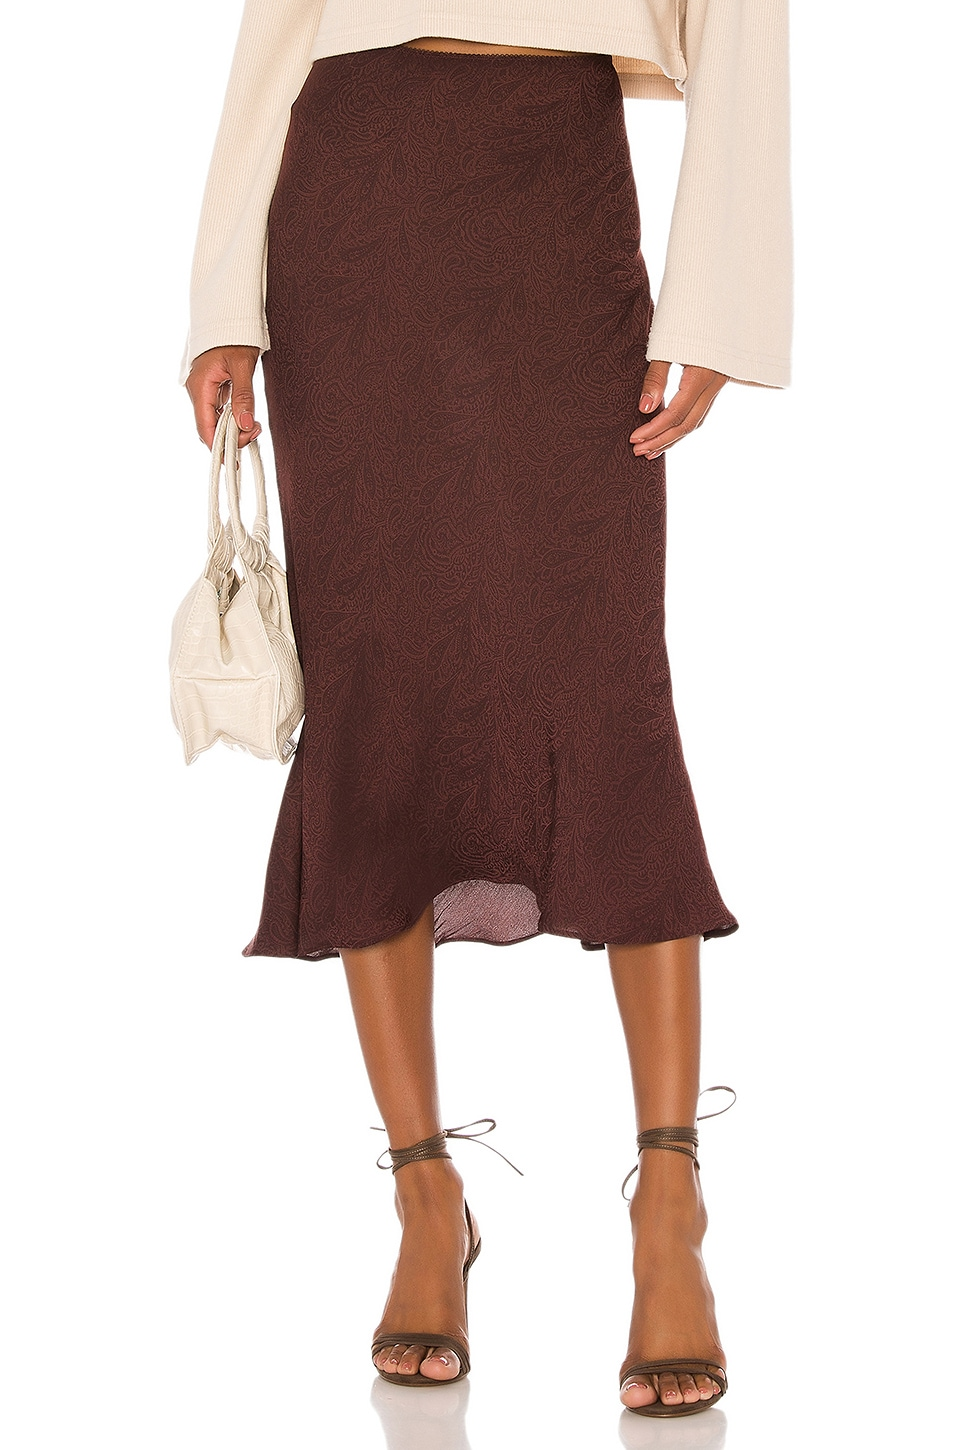 L'Academie The Jeune Midi Skirt in Burgundy